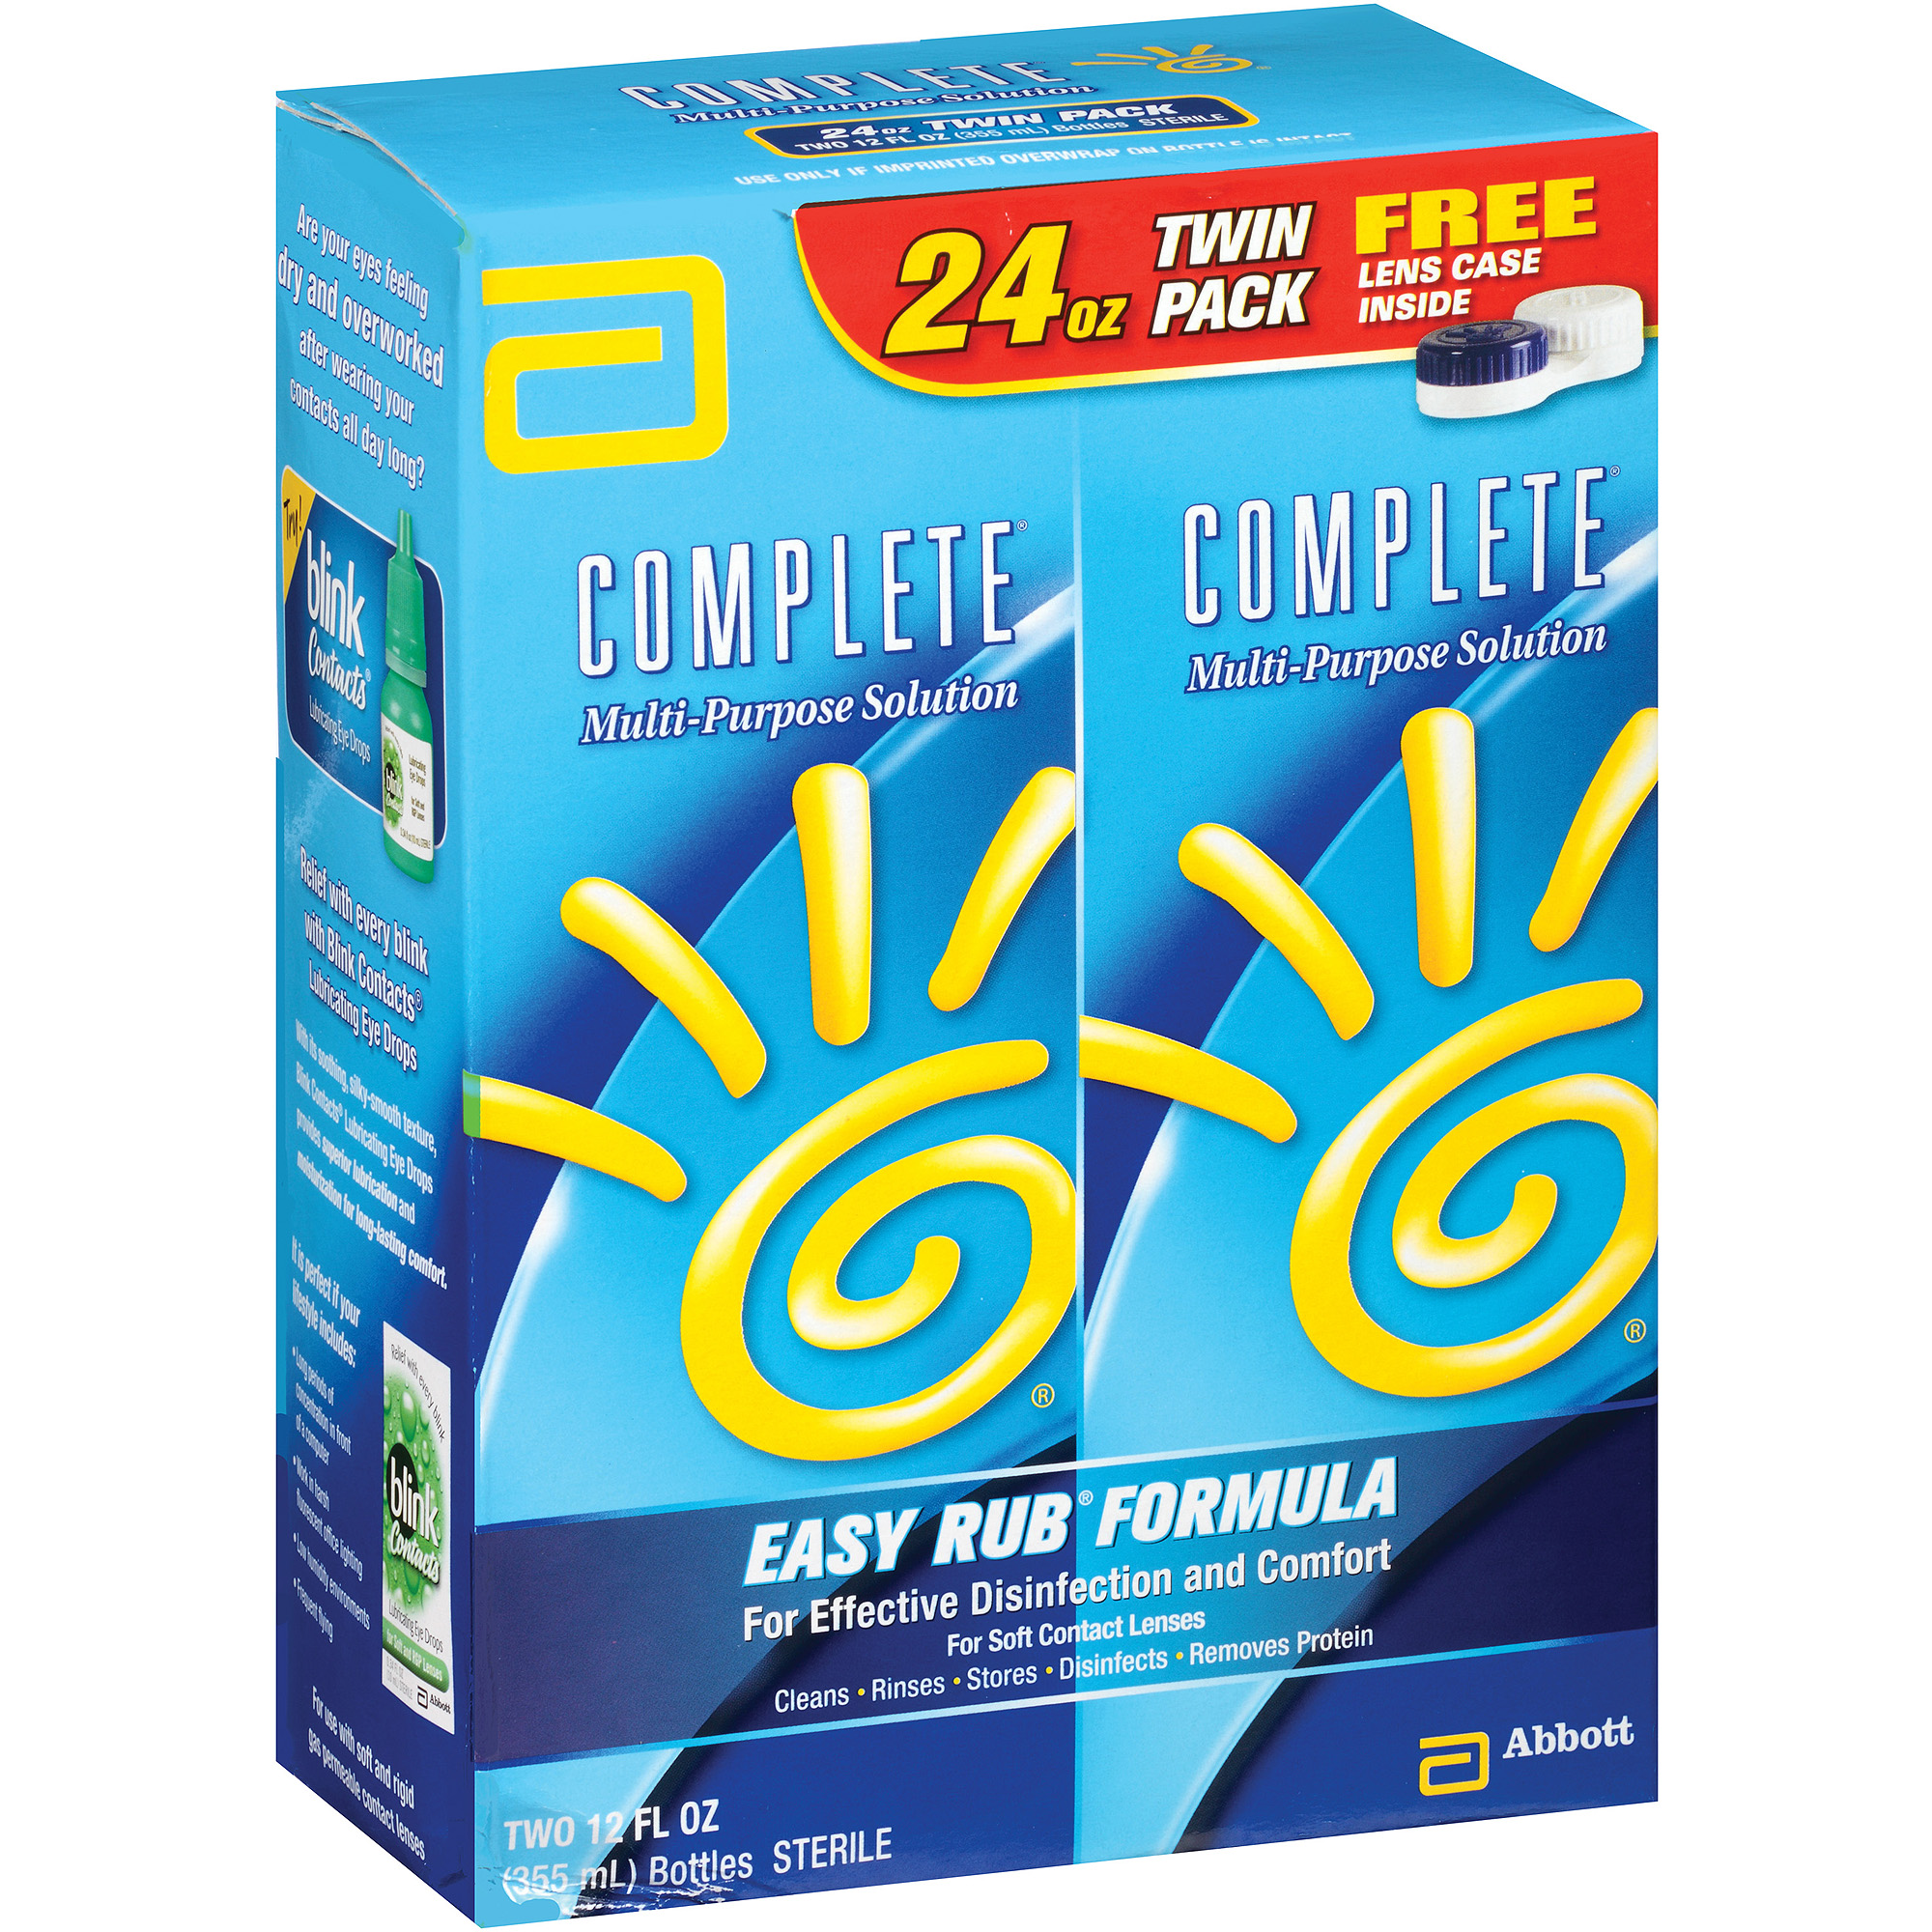 Complete Easy Rub Formula Multi-Purpose Solution with Lens Case, 12 fl oz, 2 count